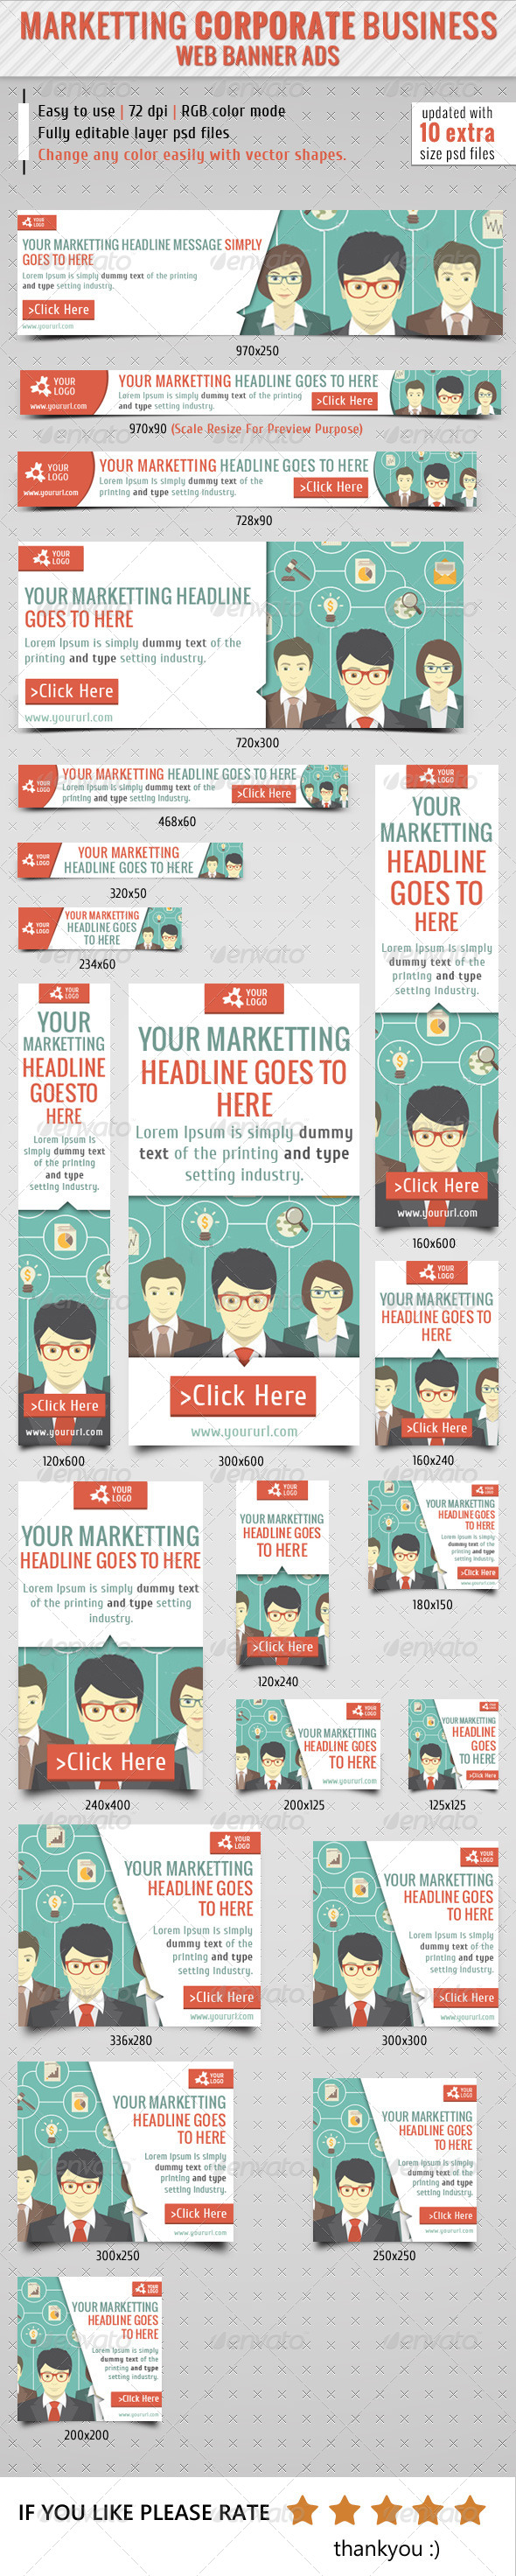 Marketting Corporate Business Web Banner - Banners & Ads Web Elements